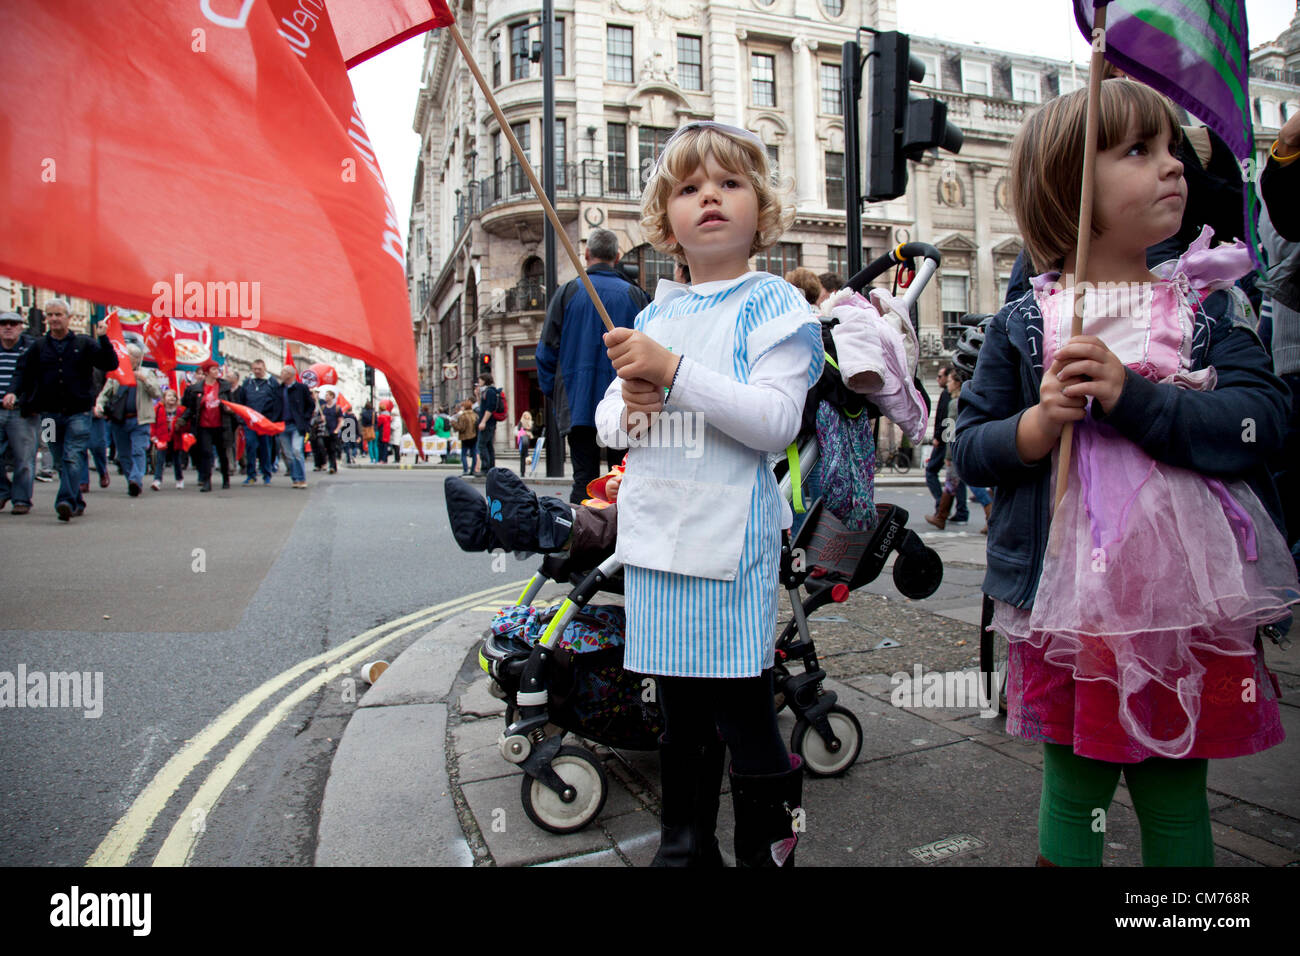 London, UK. Saturday 20th October 2012. TUC (Trades Union Congress) march 'A Future That Works'. Demonstration - Stock Image